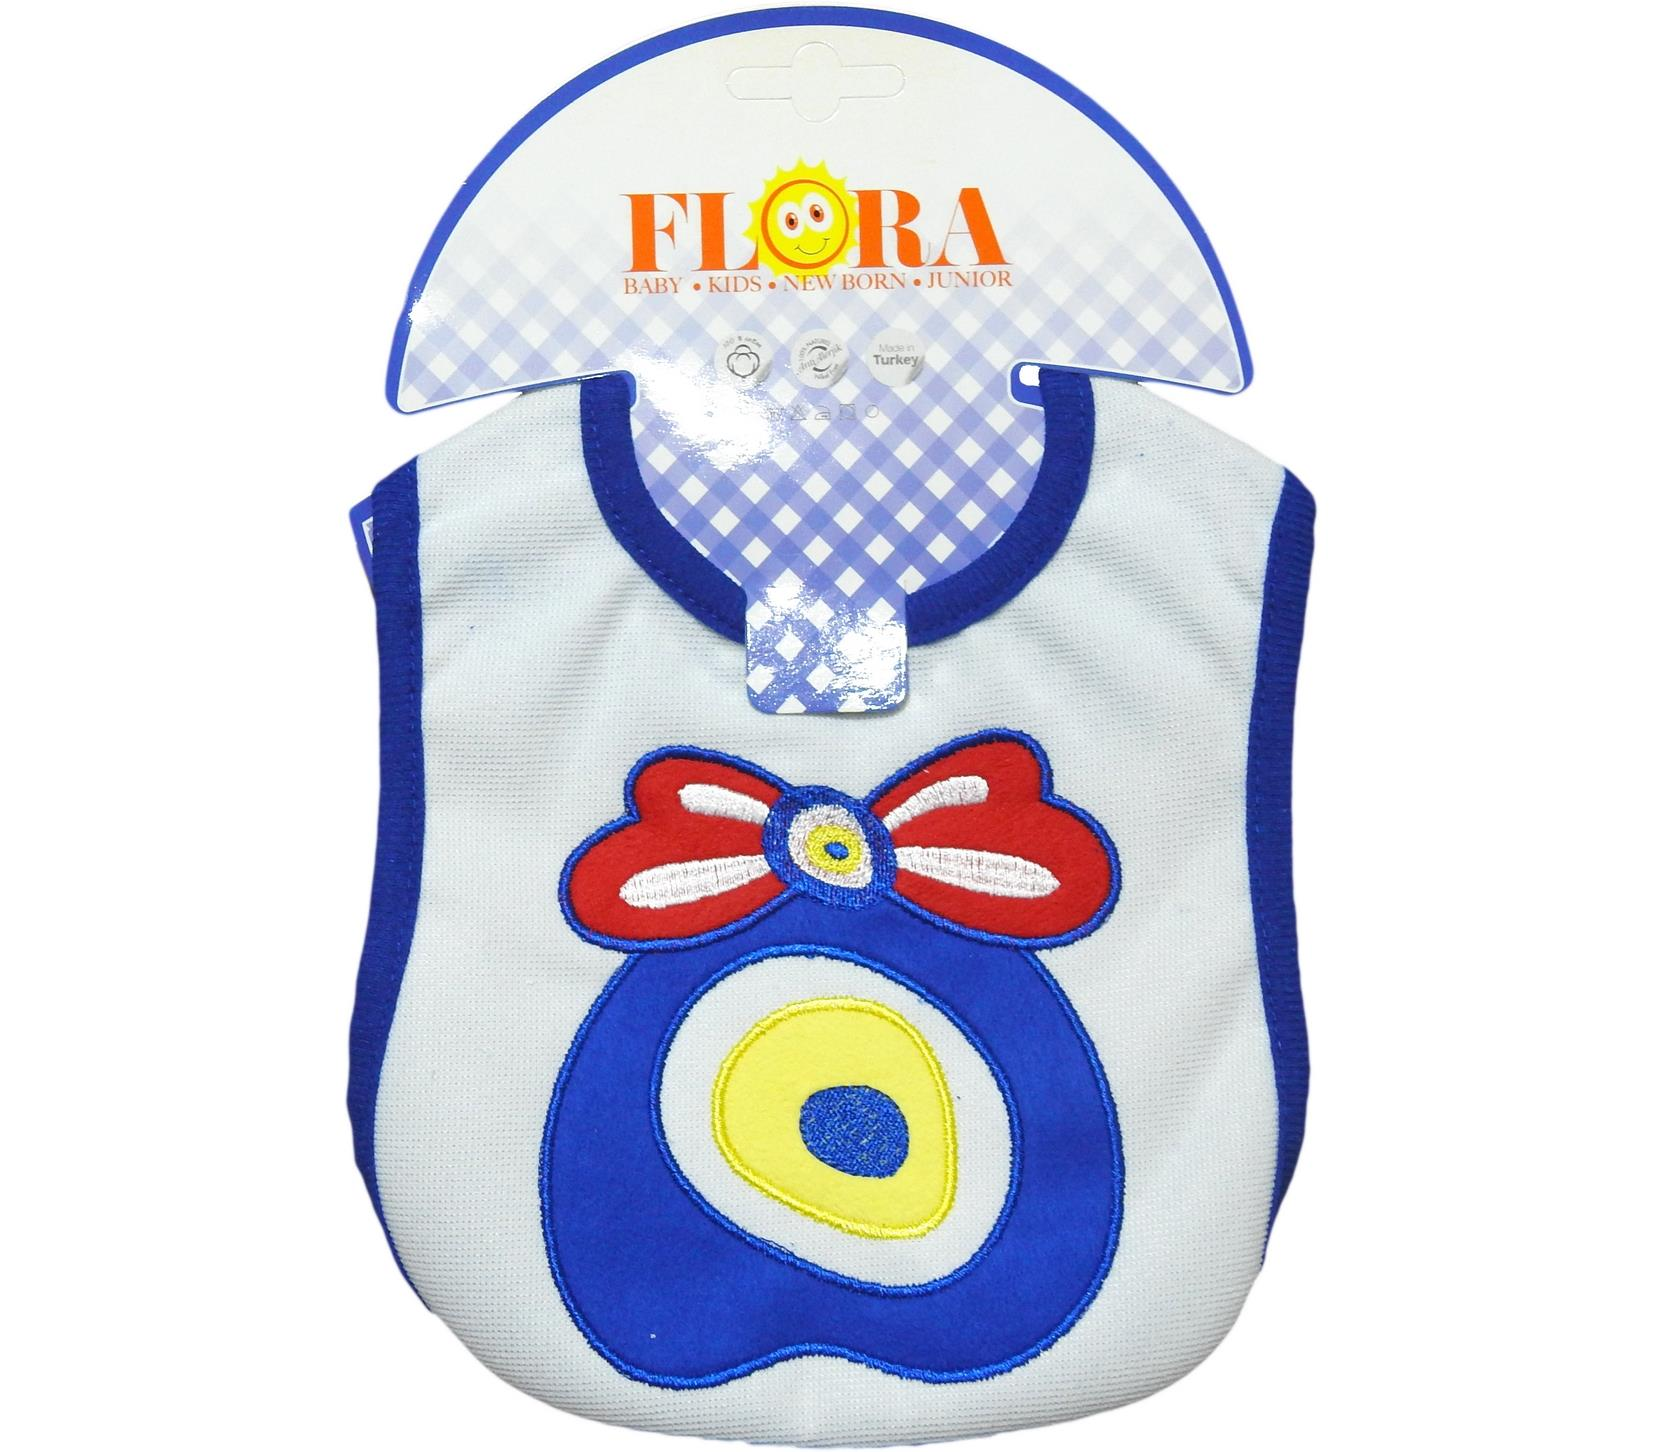 2001 Wholesale evil eye printed bibs for baby products 6 pieces in package